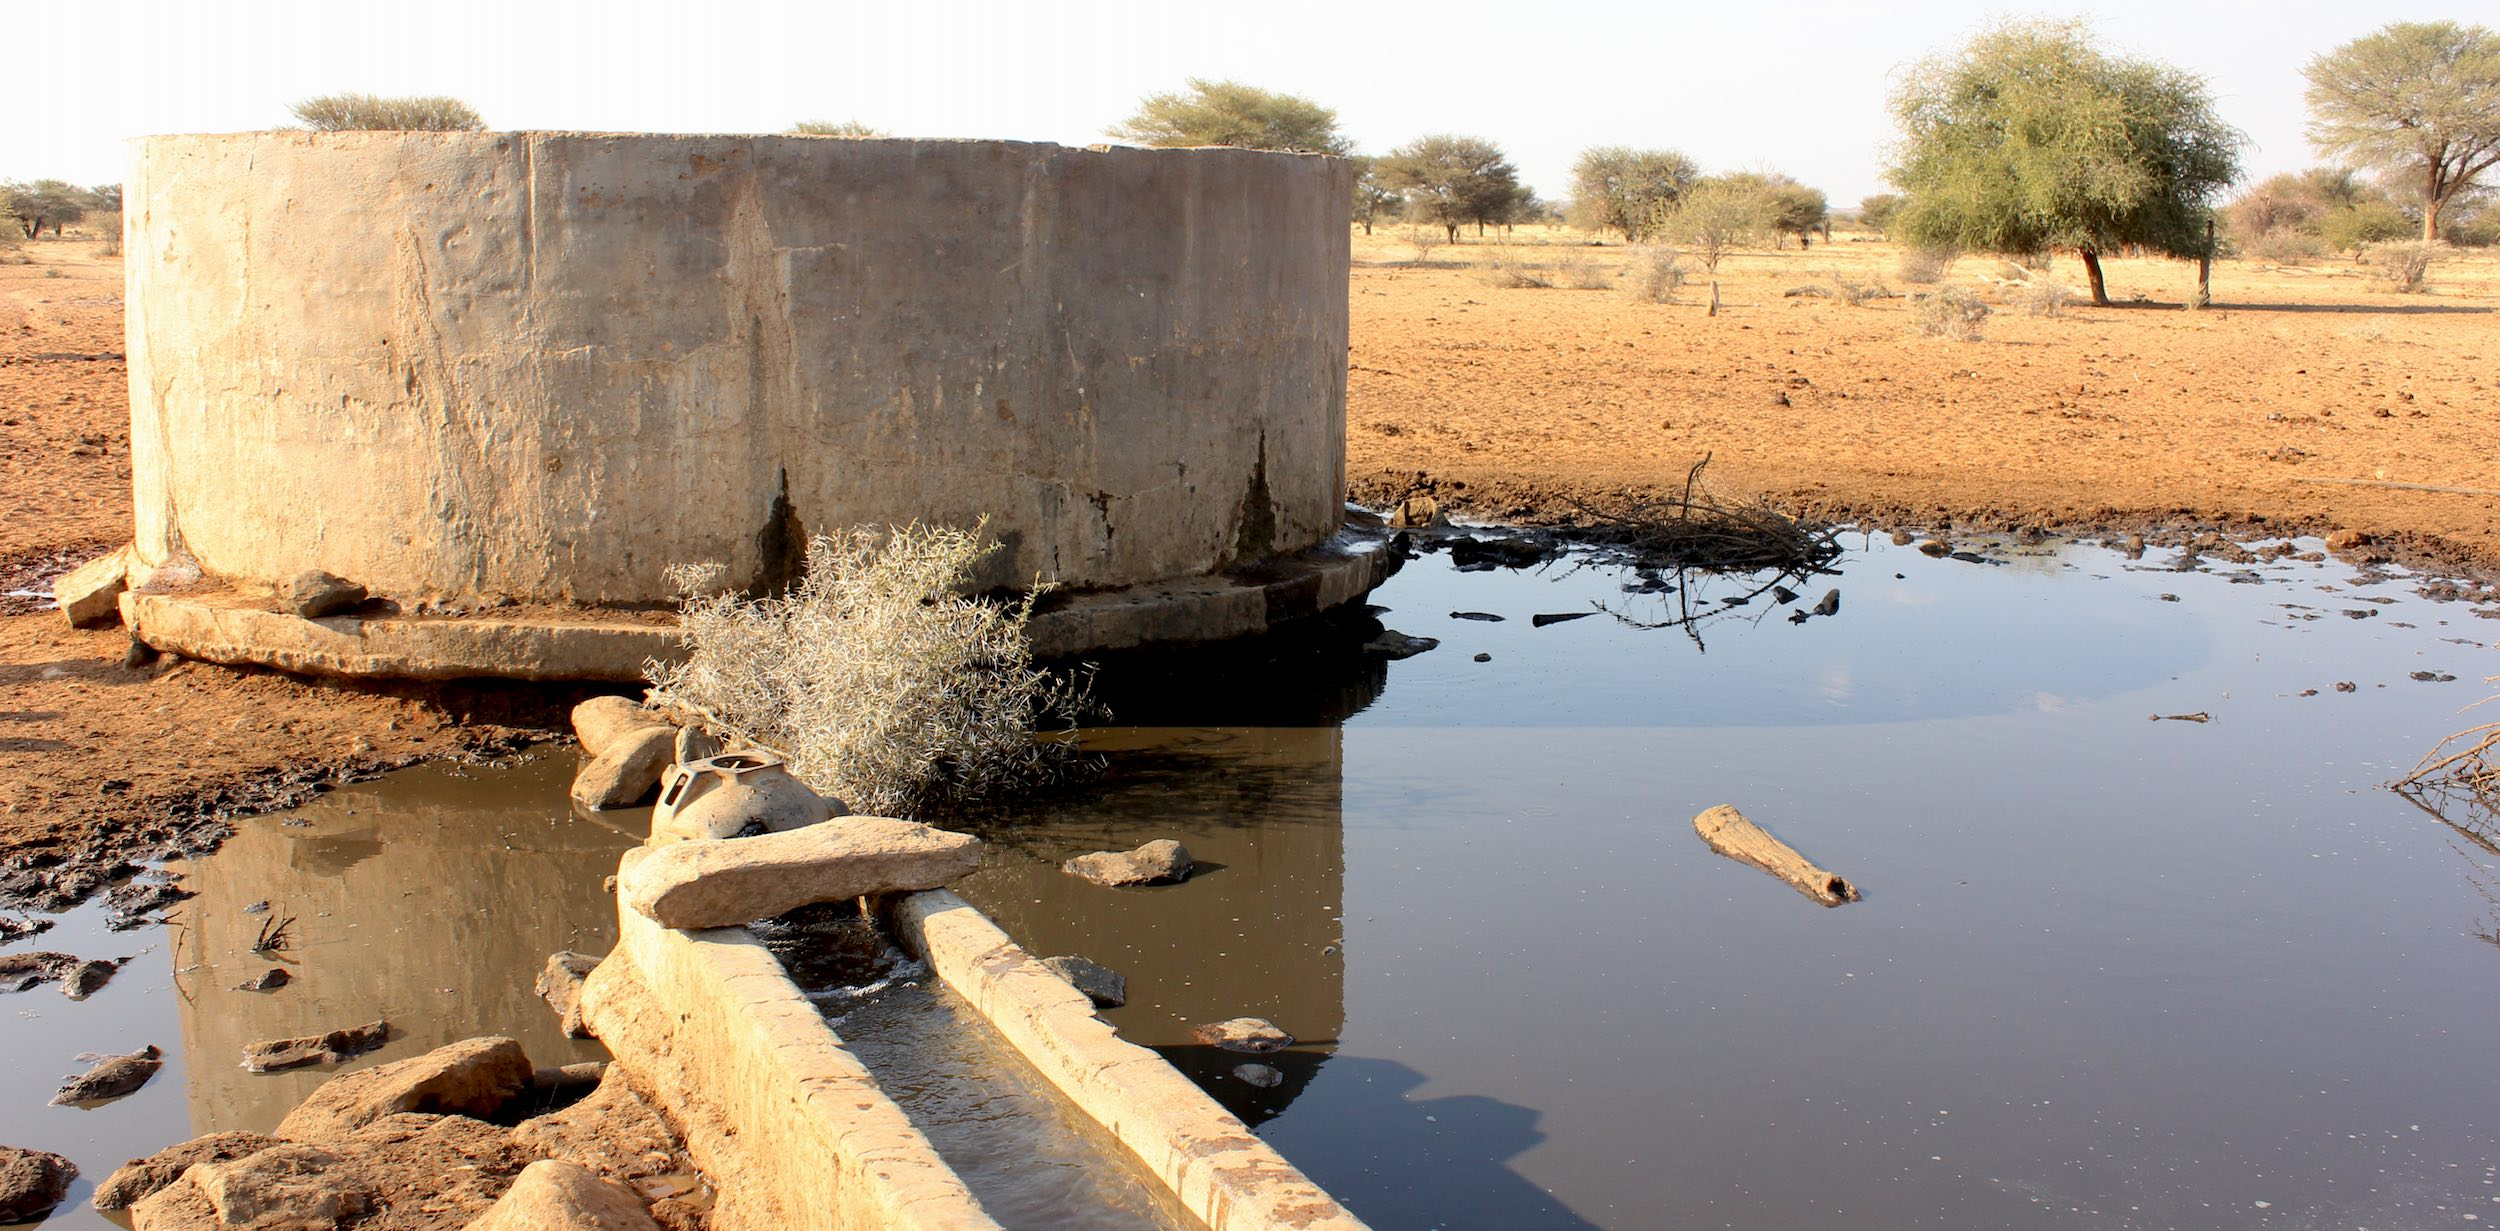 A water reservoir damaged by an elephant.